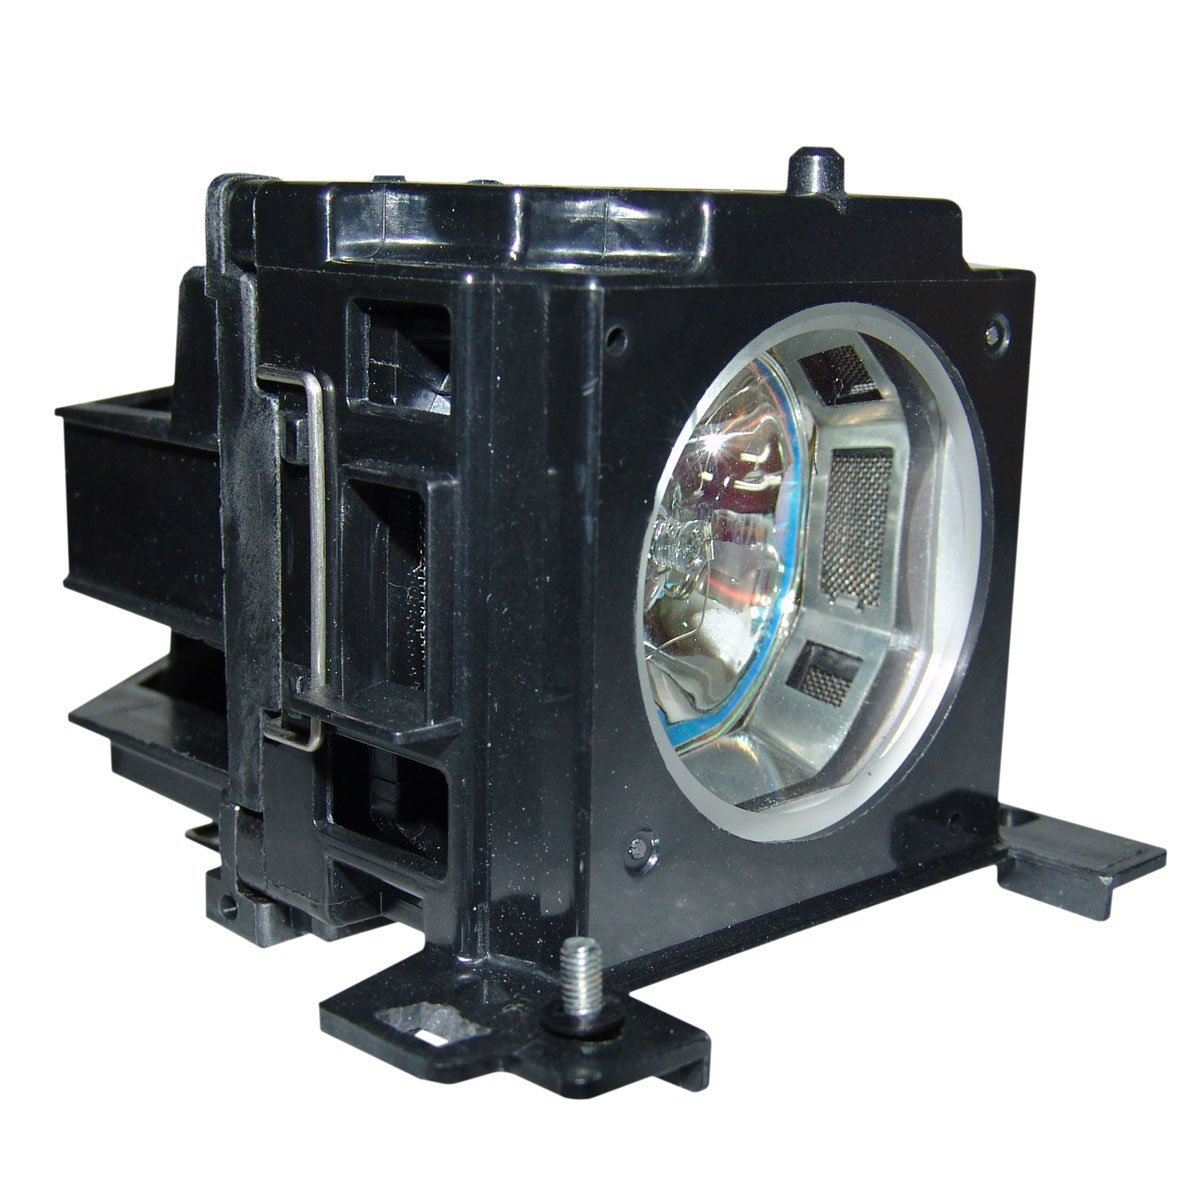 ФОТО Projector lamp bulb RLC-020 lamp for VIEWSONIC Projector PJ658D PD-X702 bulb with housing/case free shipping